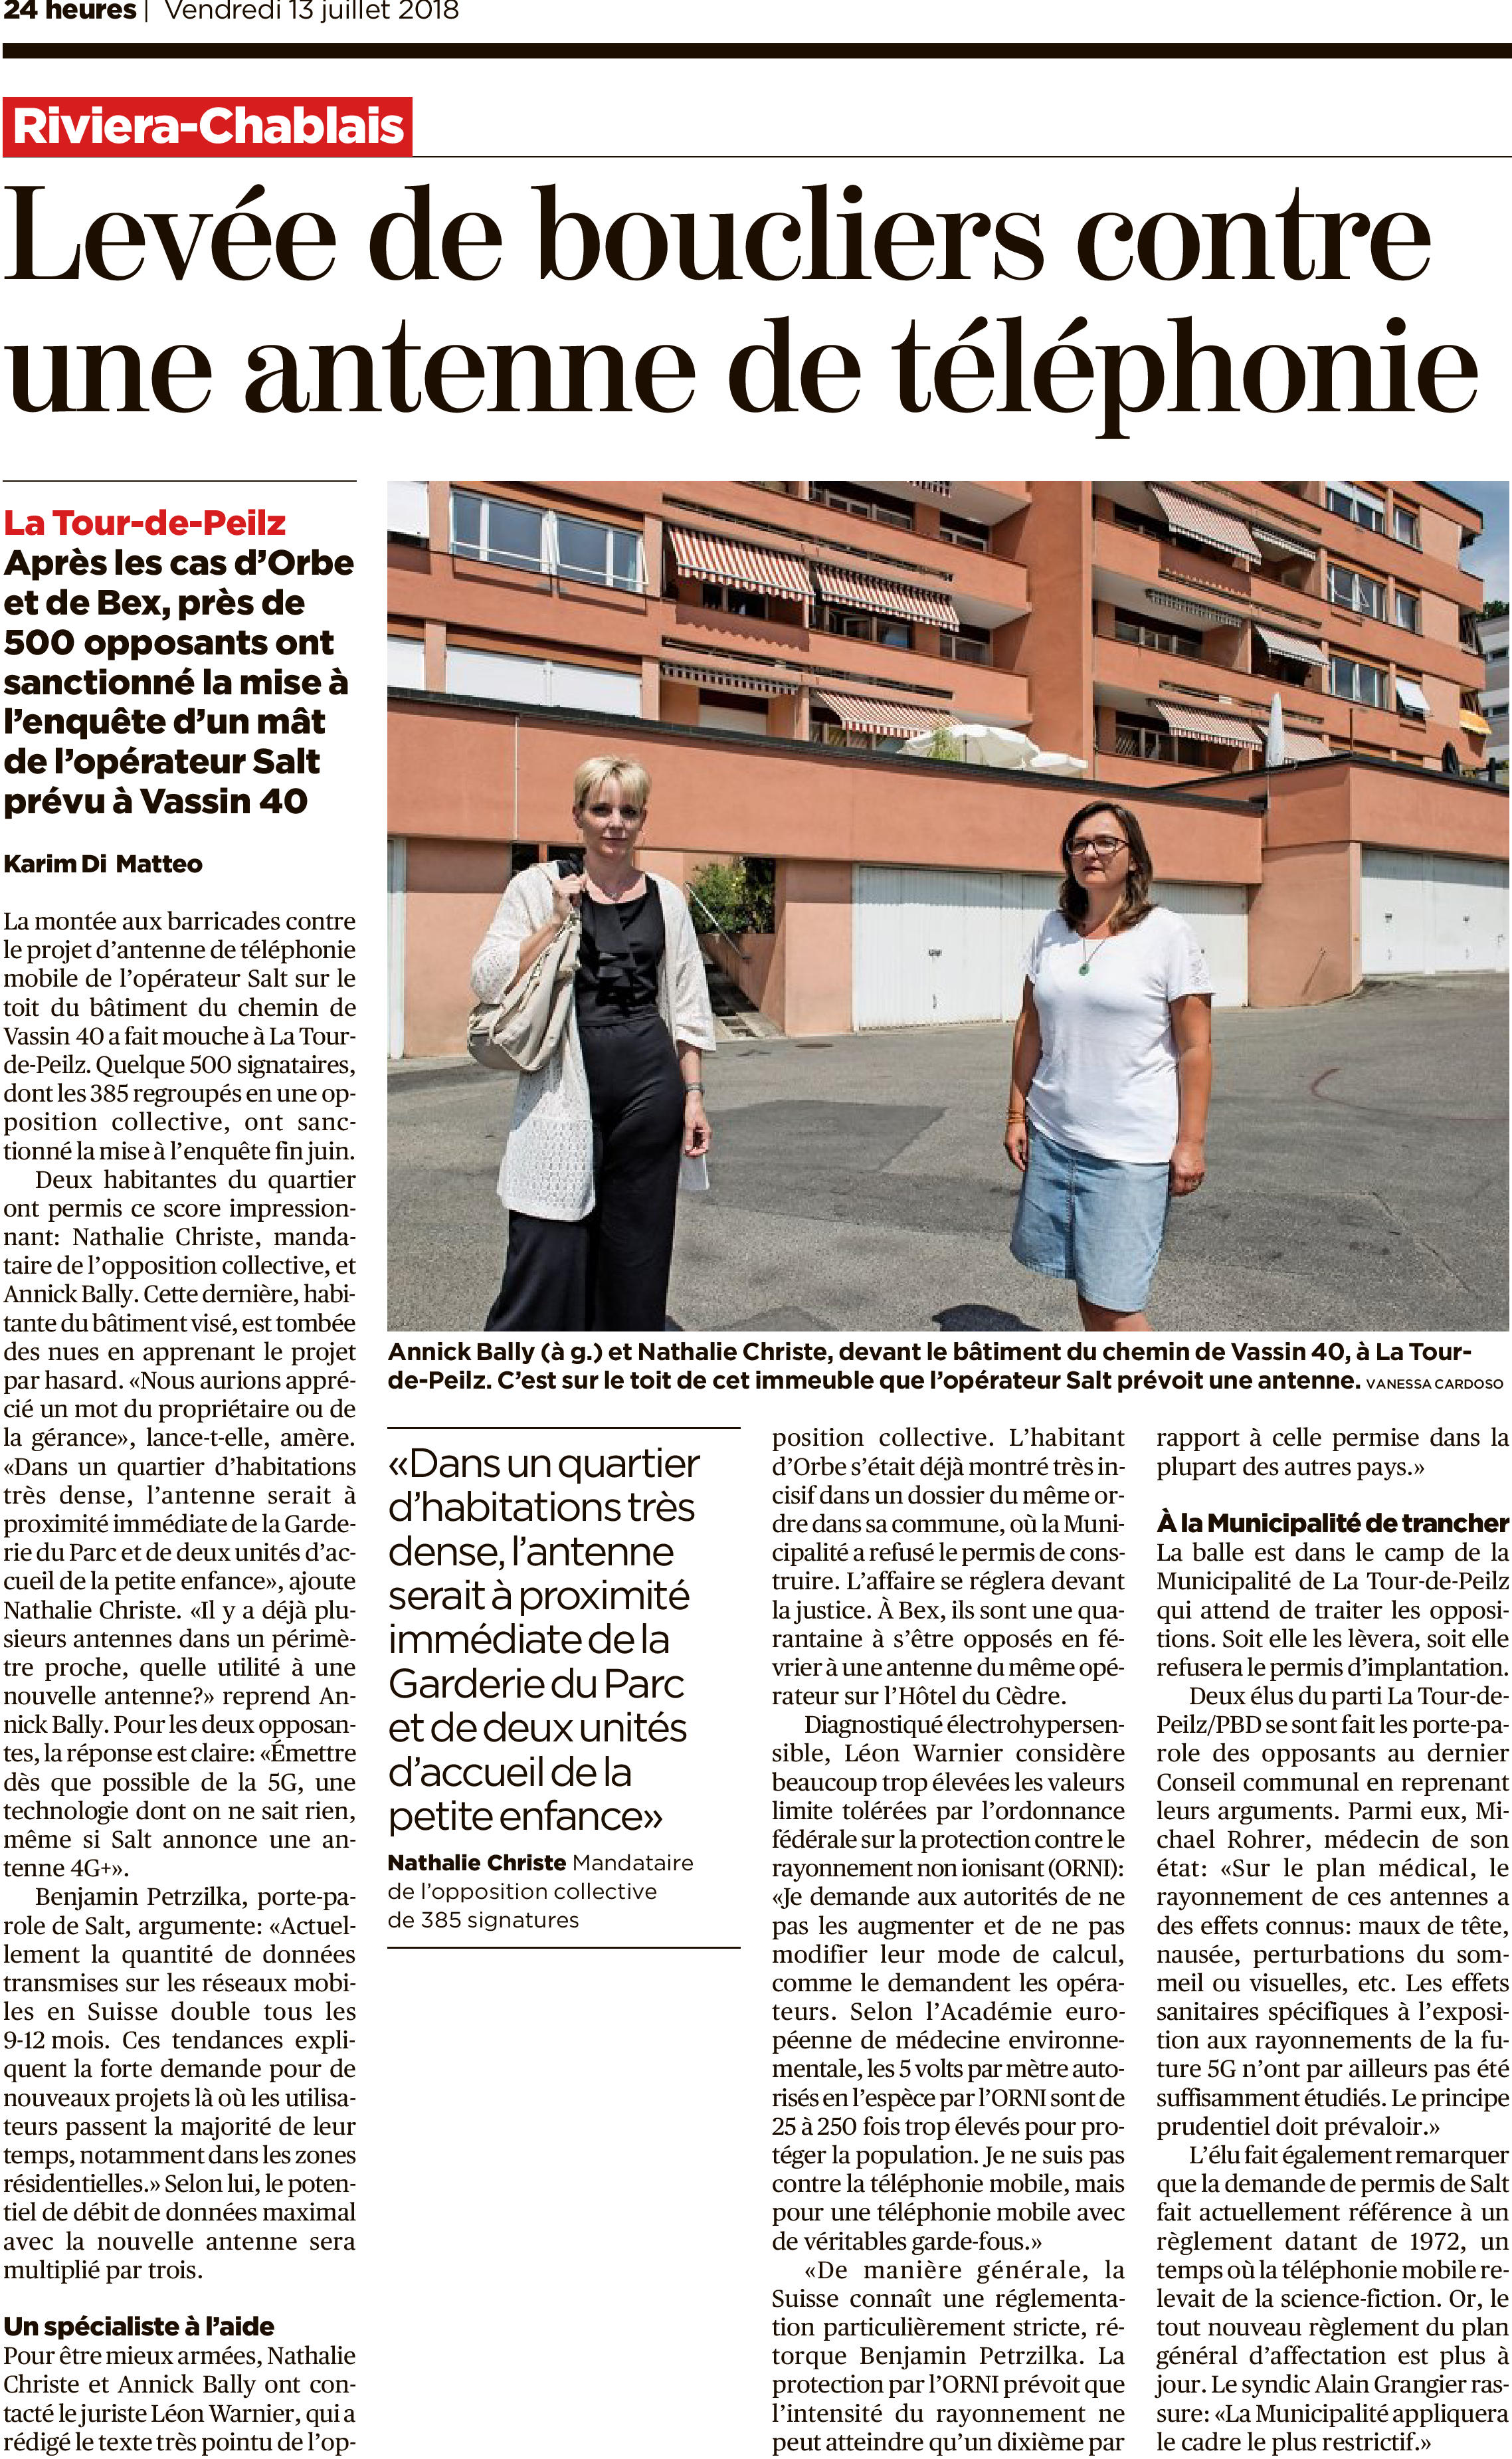 page_9_24heures_REGION_2018-07-13